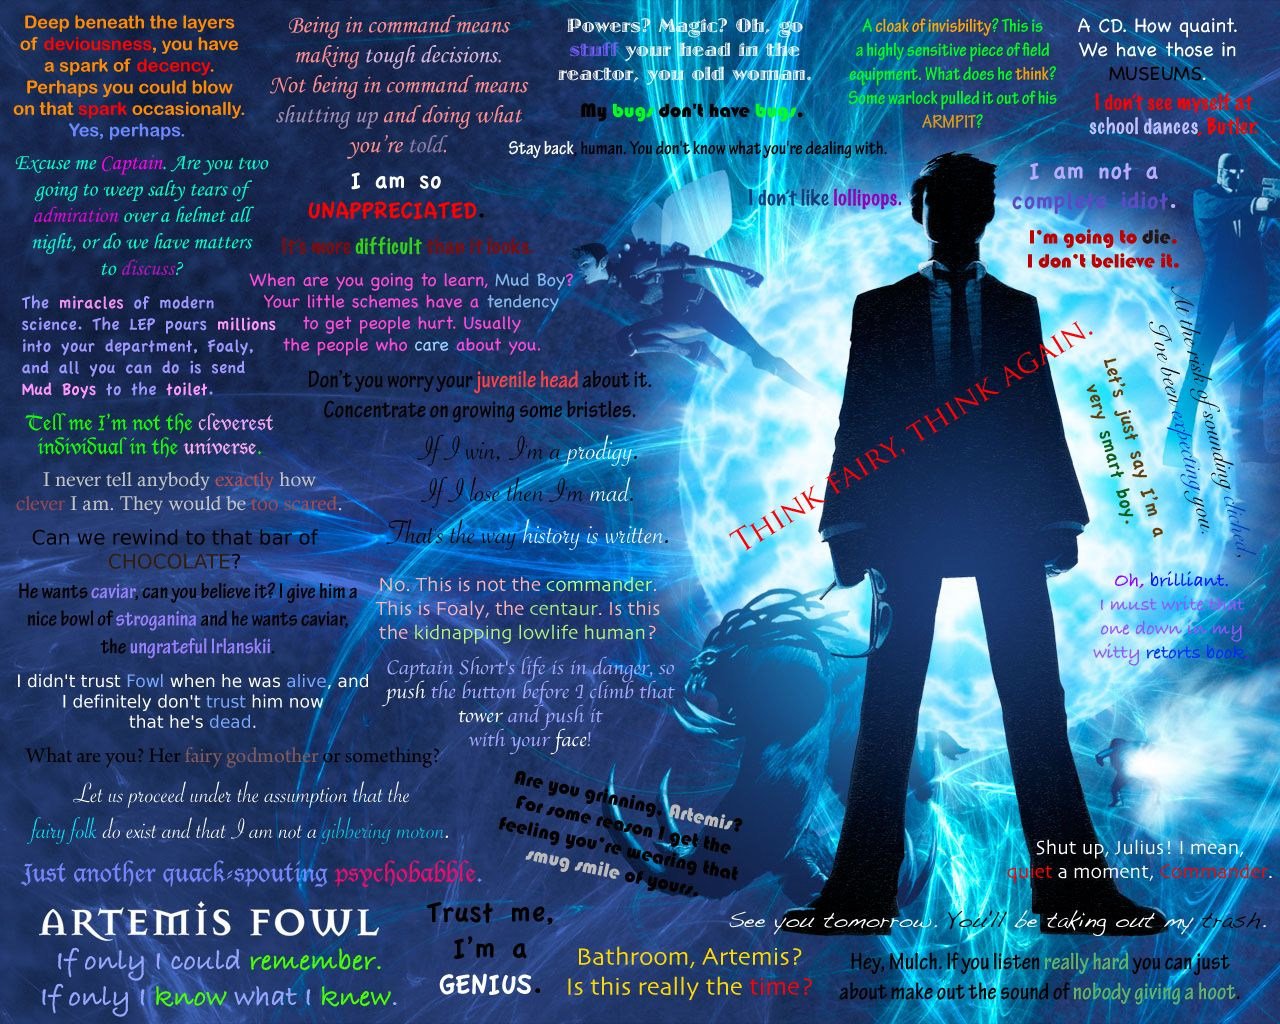 Artemis Fowl Desktop Background. Am I Obsessed If I Know All Of These?  Artemis FowlCharacter QuotesWallpaper QuotesBook ...